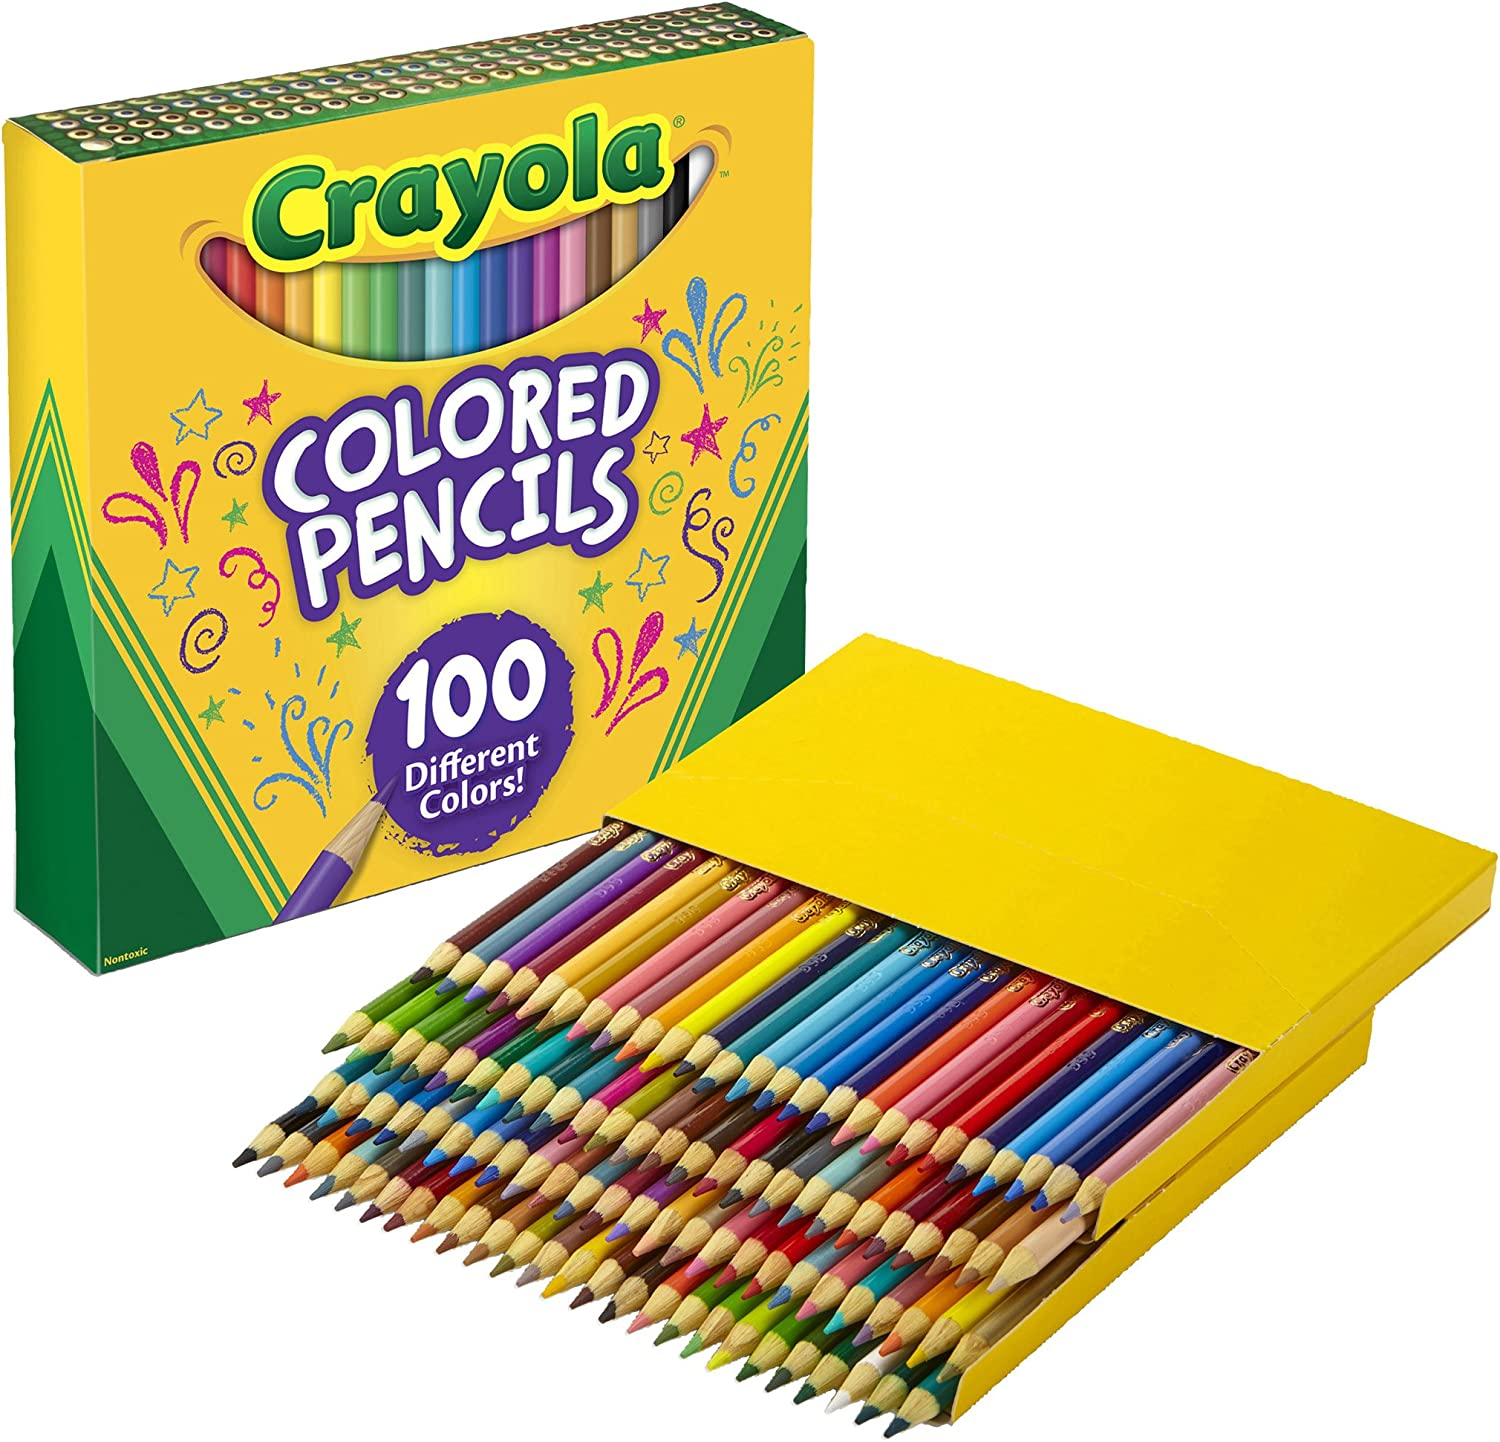 Crayola Colored Pencils Adult Coloring Set, Gift, 100 Count: Toys & Games